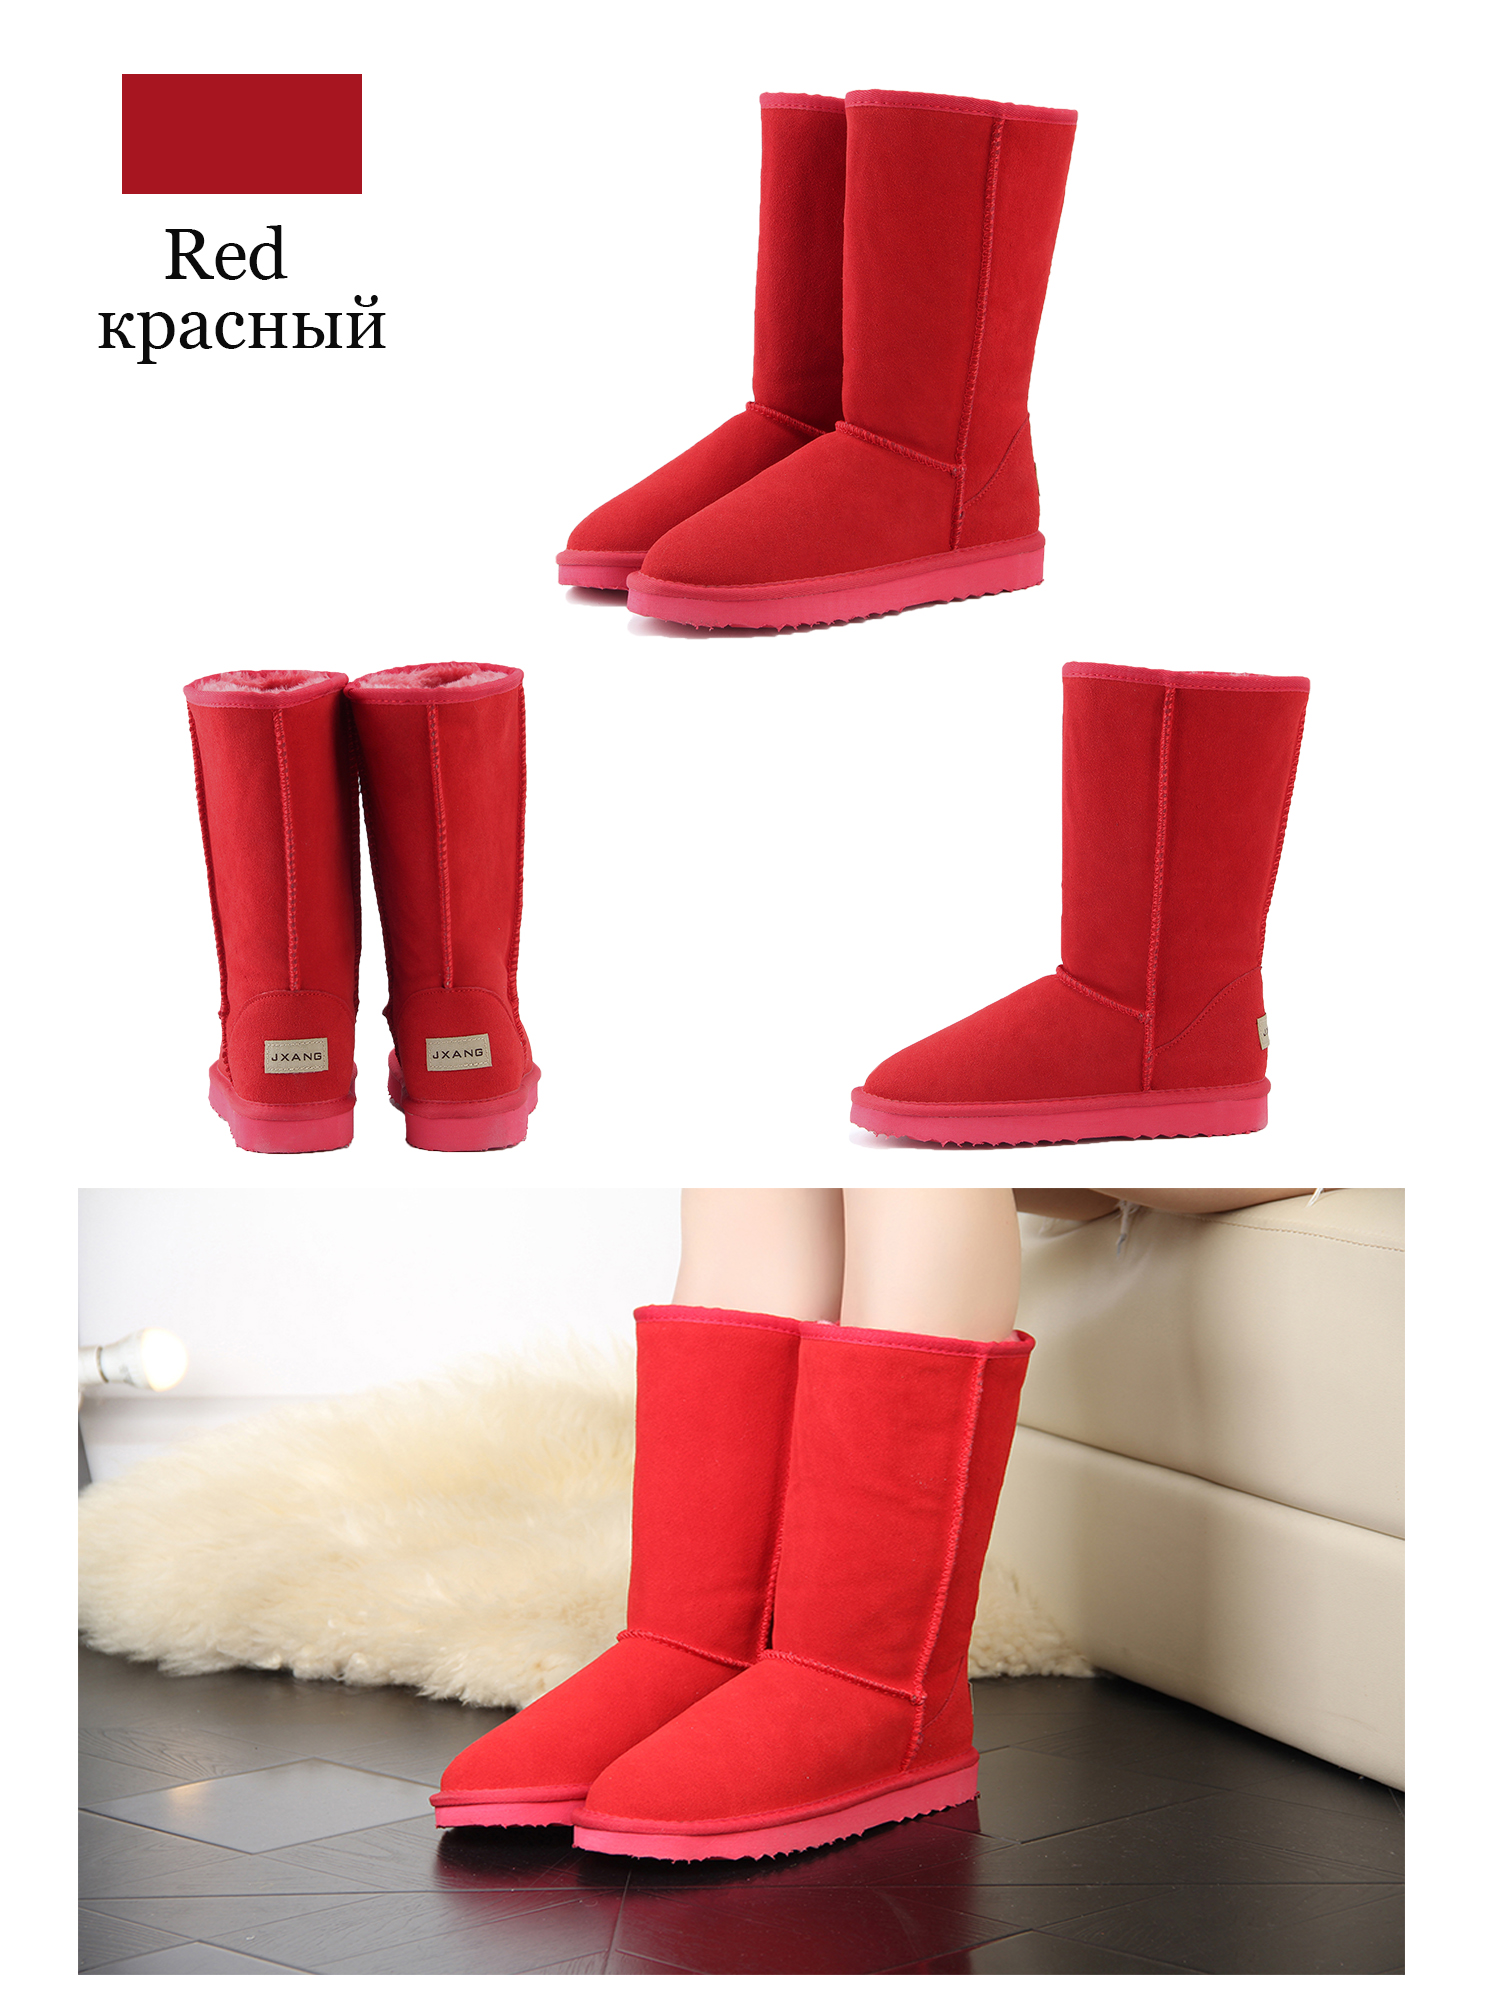 JXANG High Quality Brand  Snow Boots Women Fashion Genuine Leather Australia Classic Women's High Boot Winter Women Snow Shoes